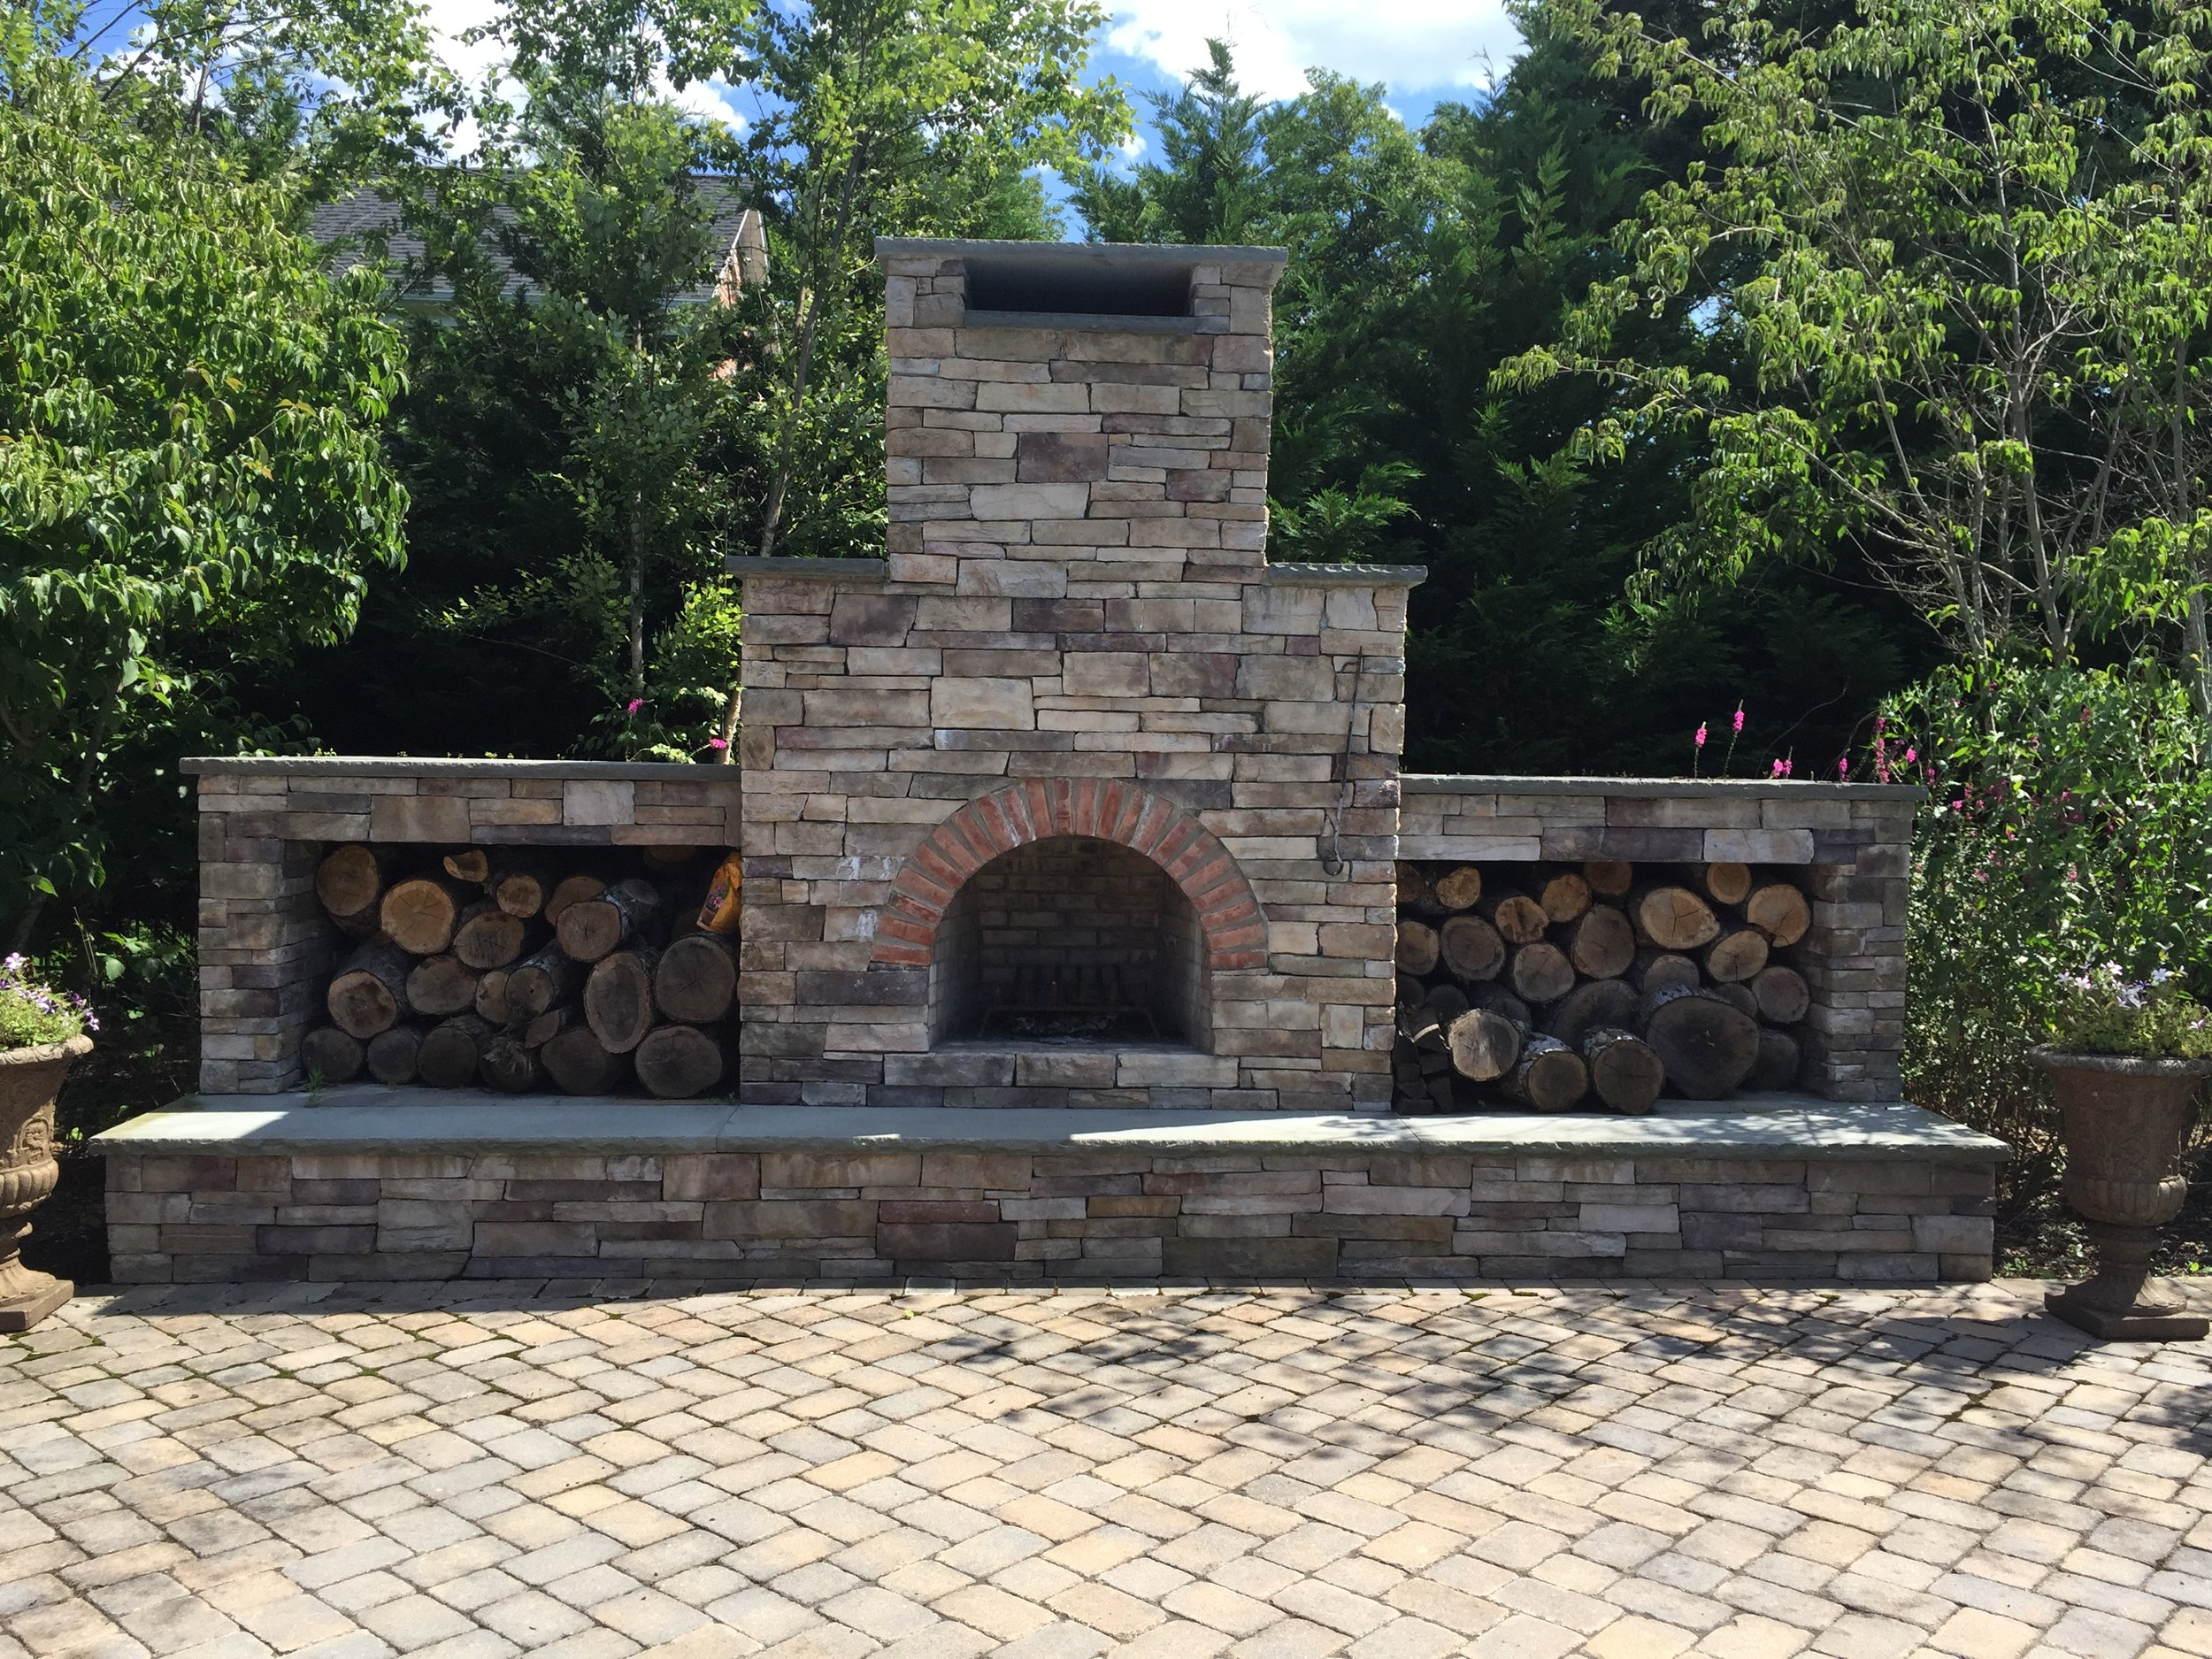 Top outdoor fireplace landscape design company in Long Island, NY